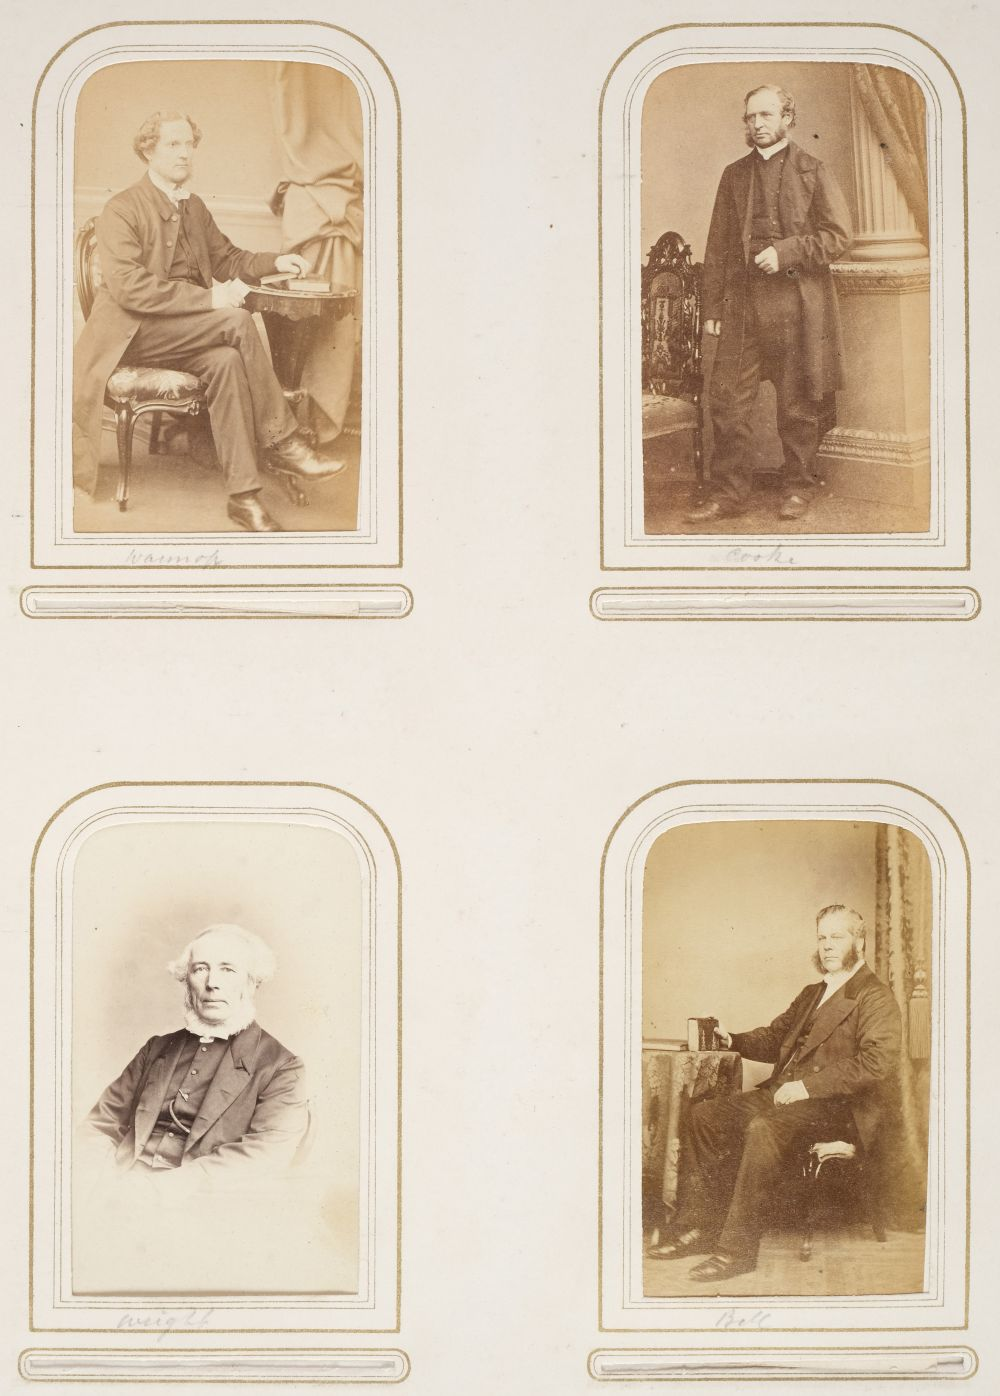 * Cartes de visite. A group of 3 albums of cartes de visite and cabinet cards - Image 10 of 26